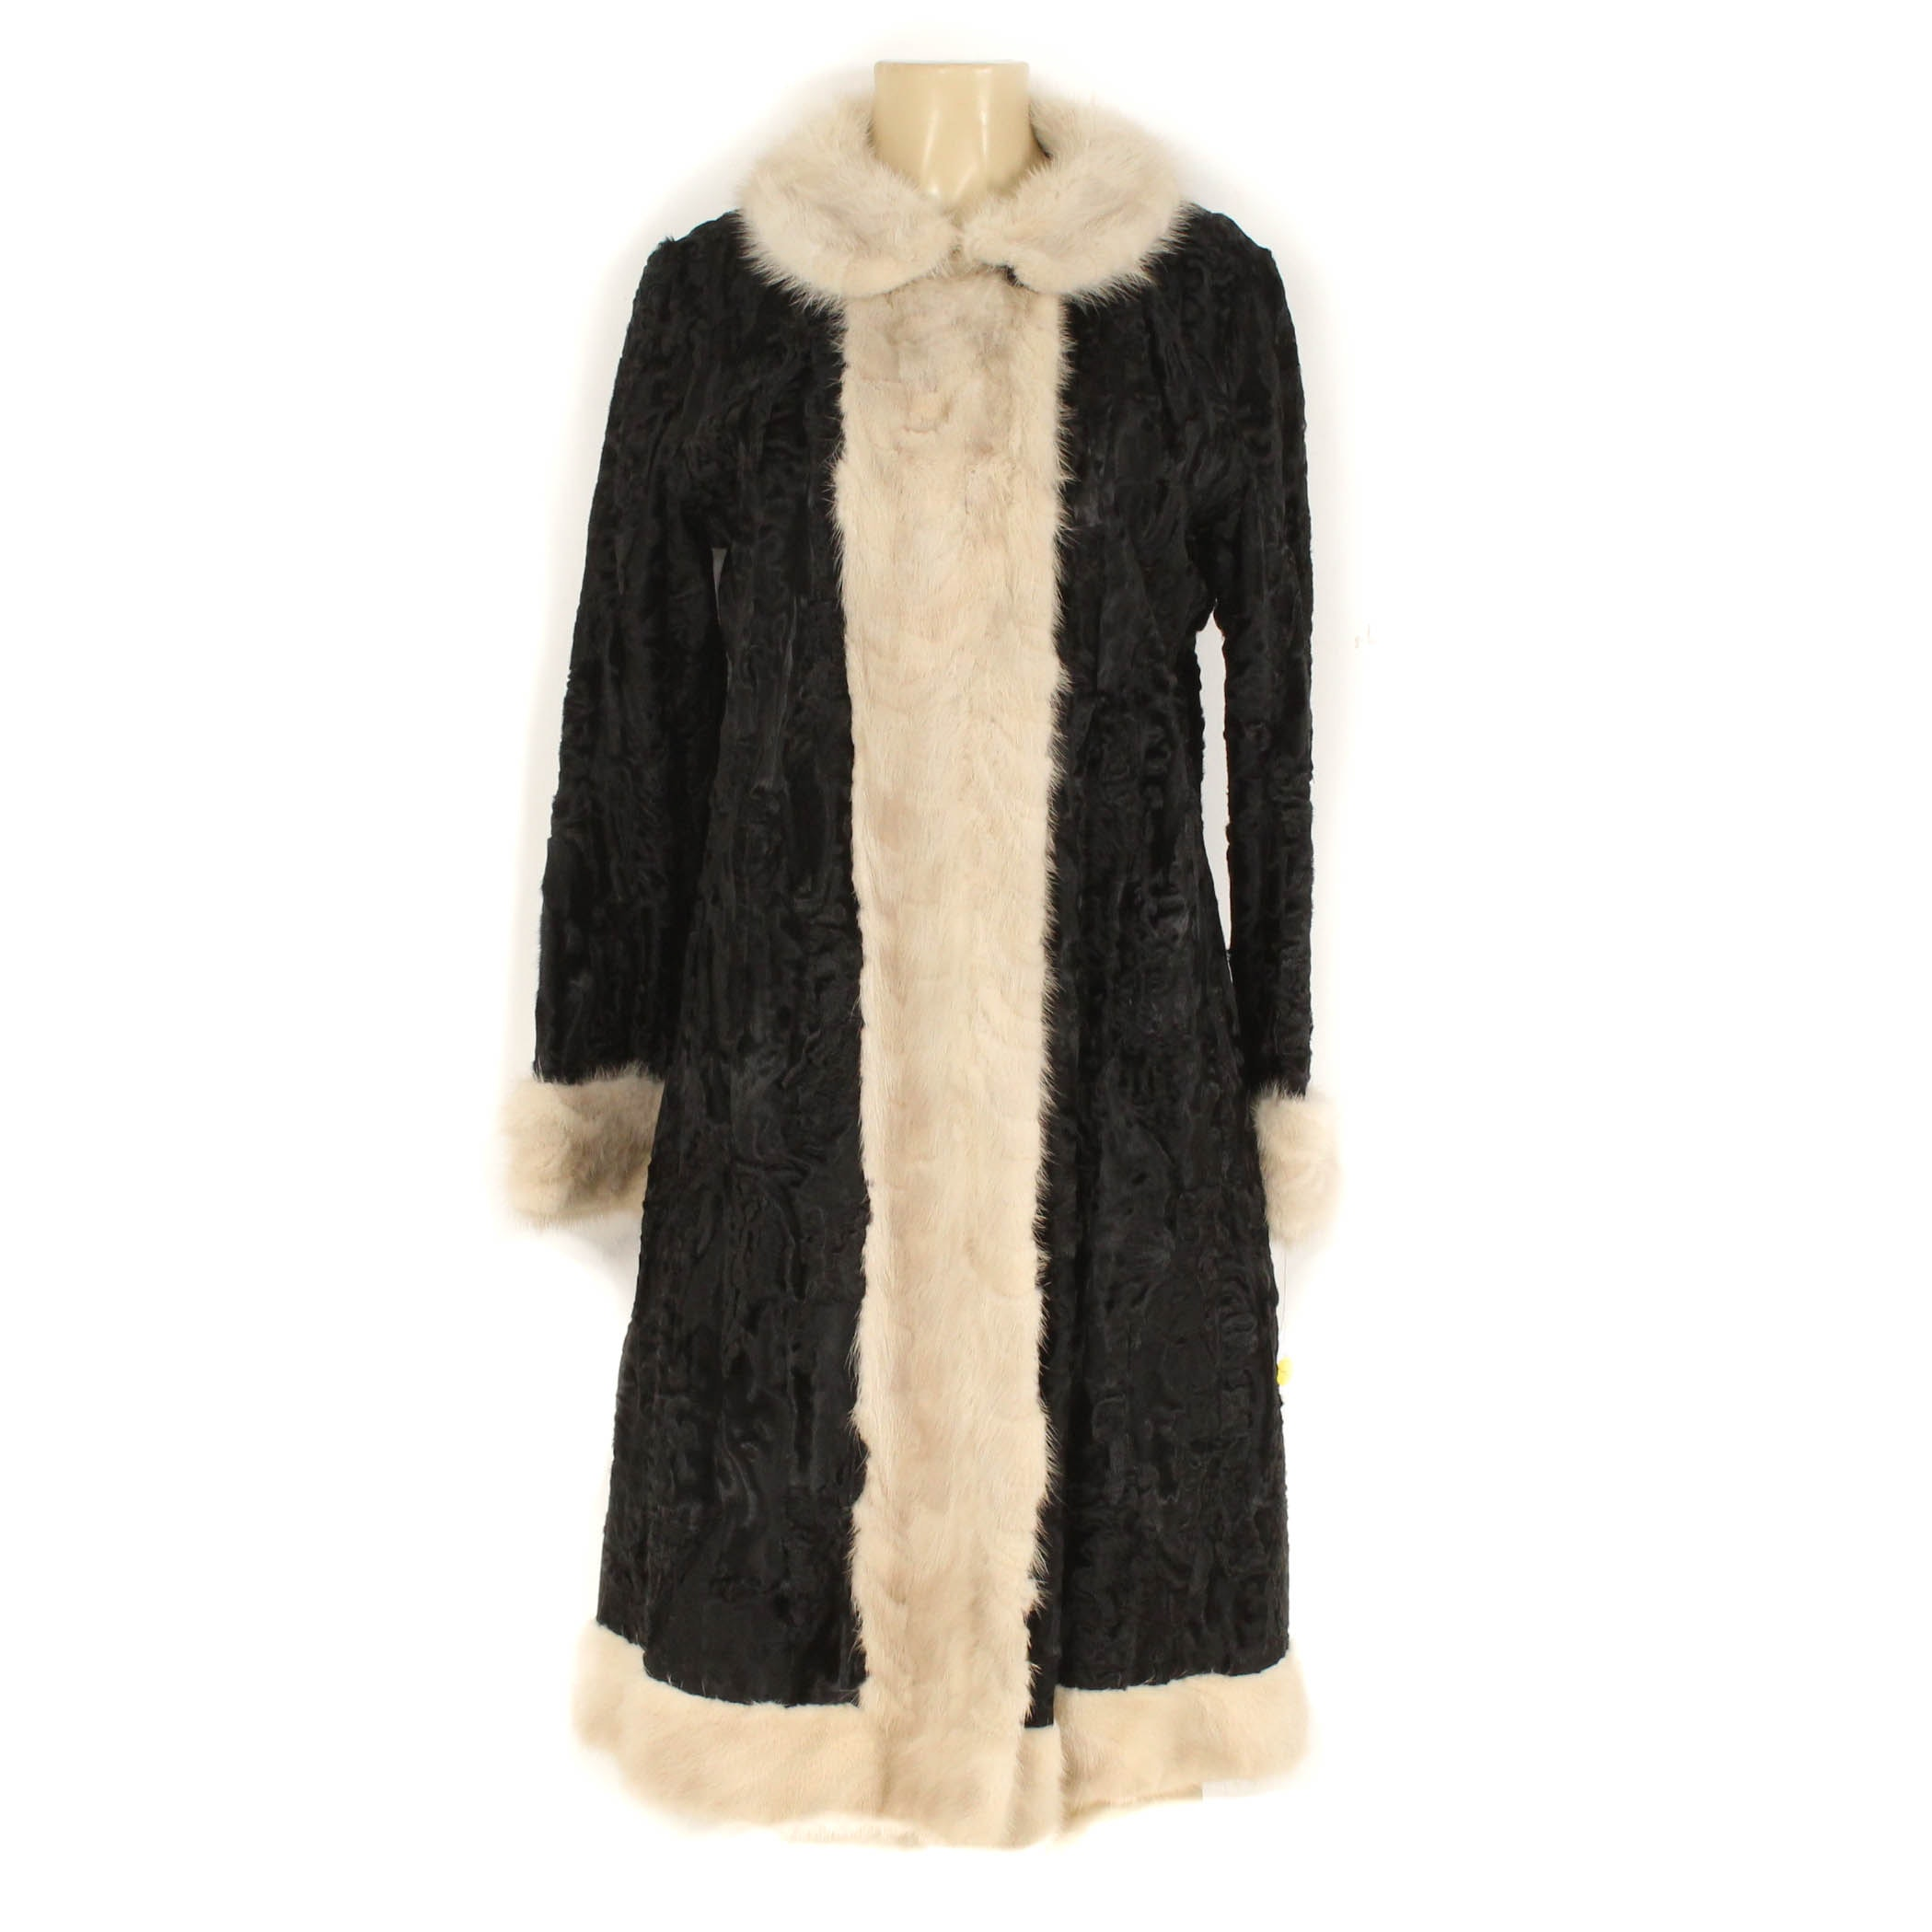 Vintage Black Broadtail and Blonde Paw Mink Fur Coat